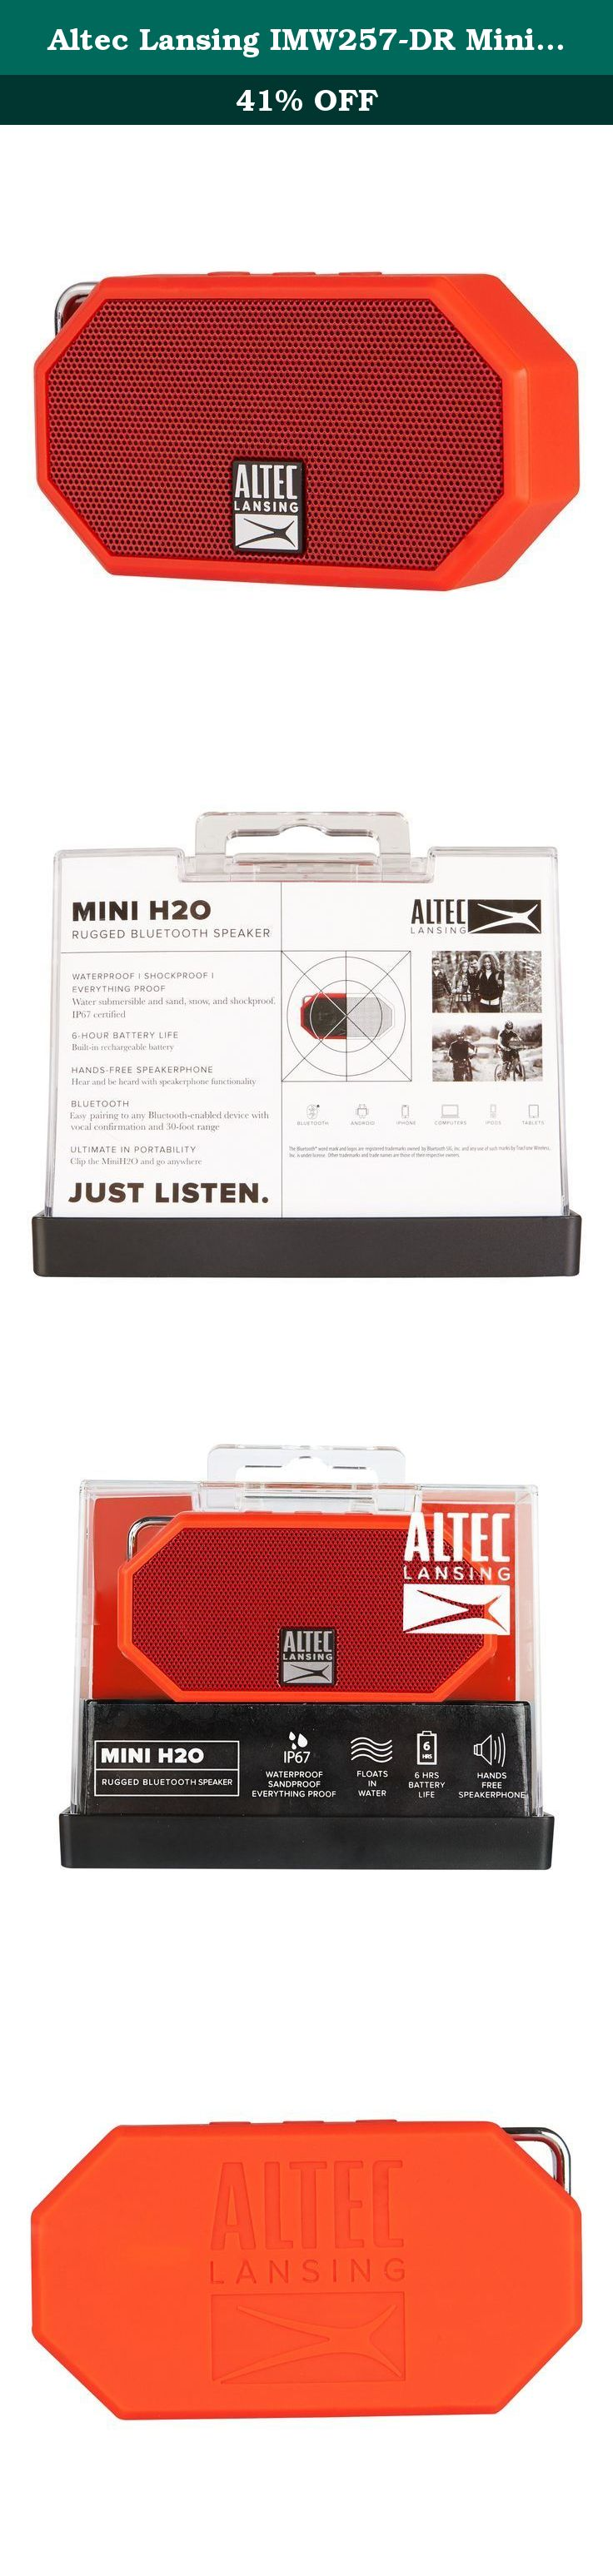 Altec Lansing Imw257 Dr Mini H2o Waterproof Sandproof Snowproof